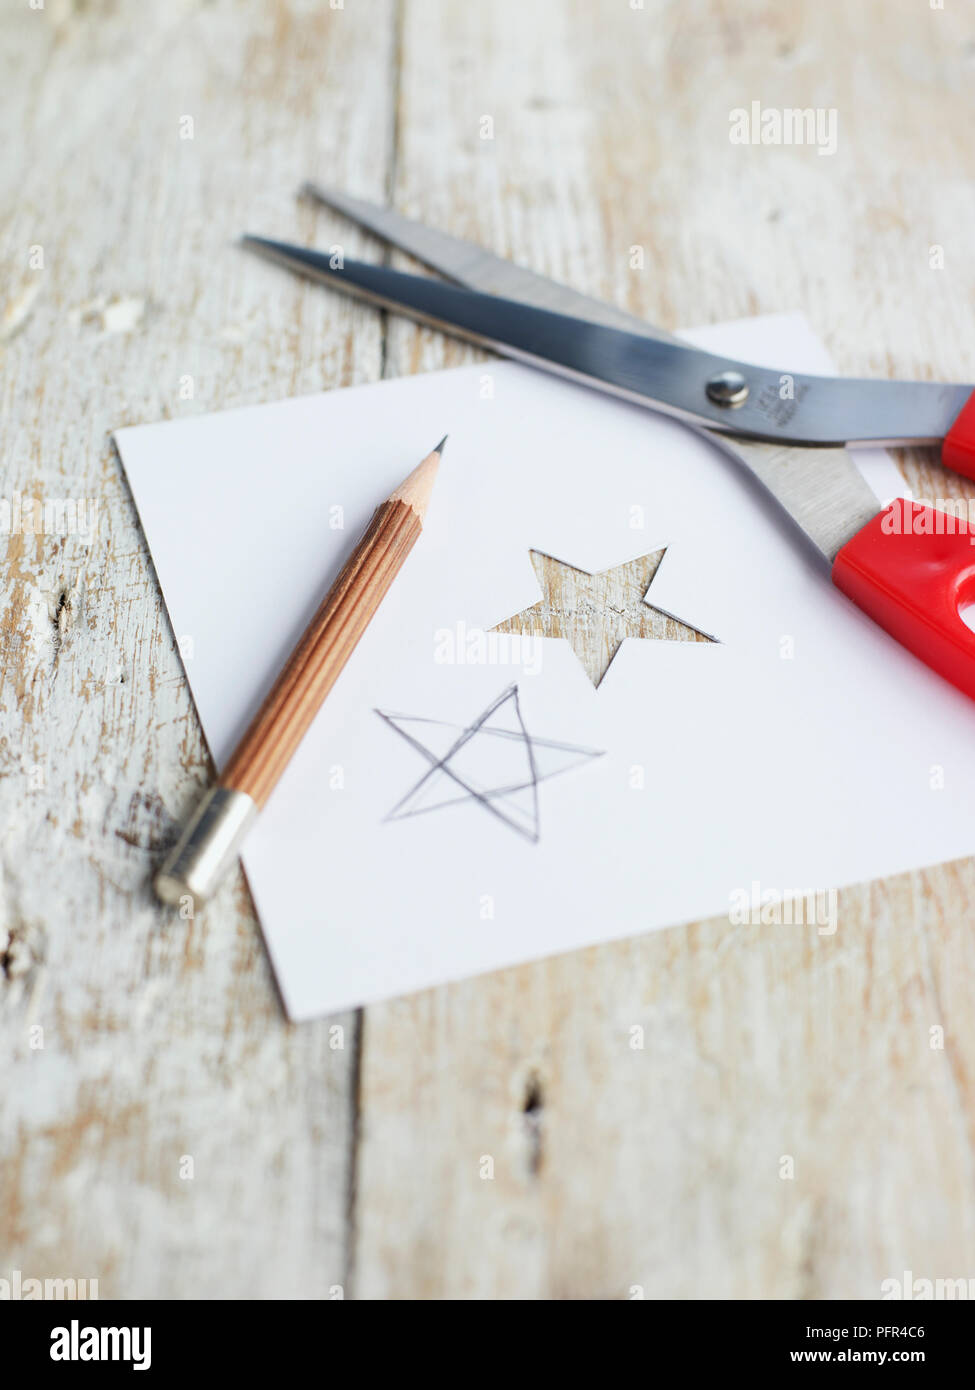 Star Shape Drawn On Piece Of Card And Cut Out